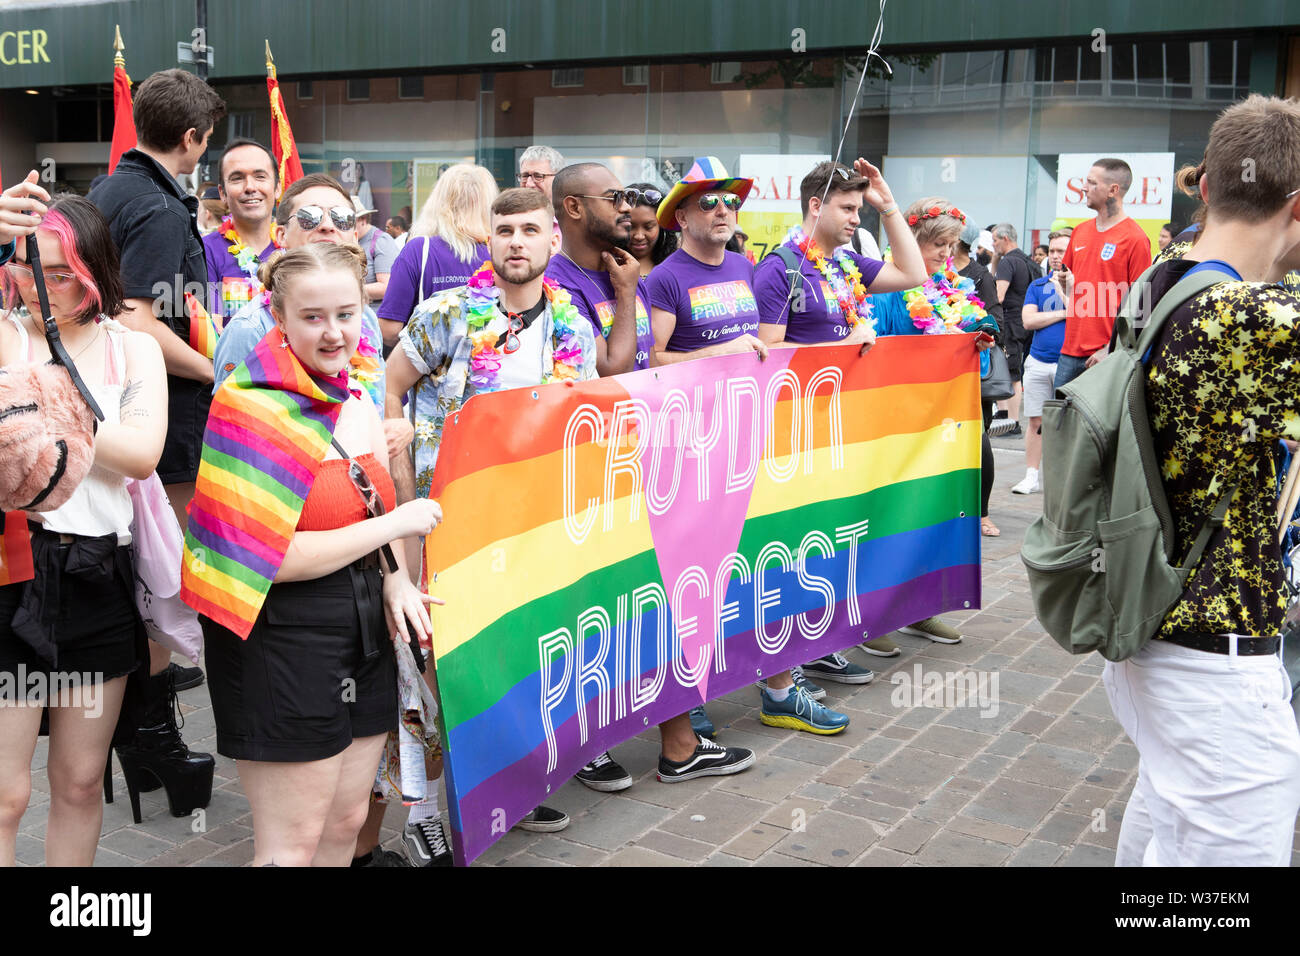 Croydon PrideFest 2019 - London's second largest and free Pride festival was back for its fourth year on Saturday 13 July - Stock Image